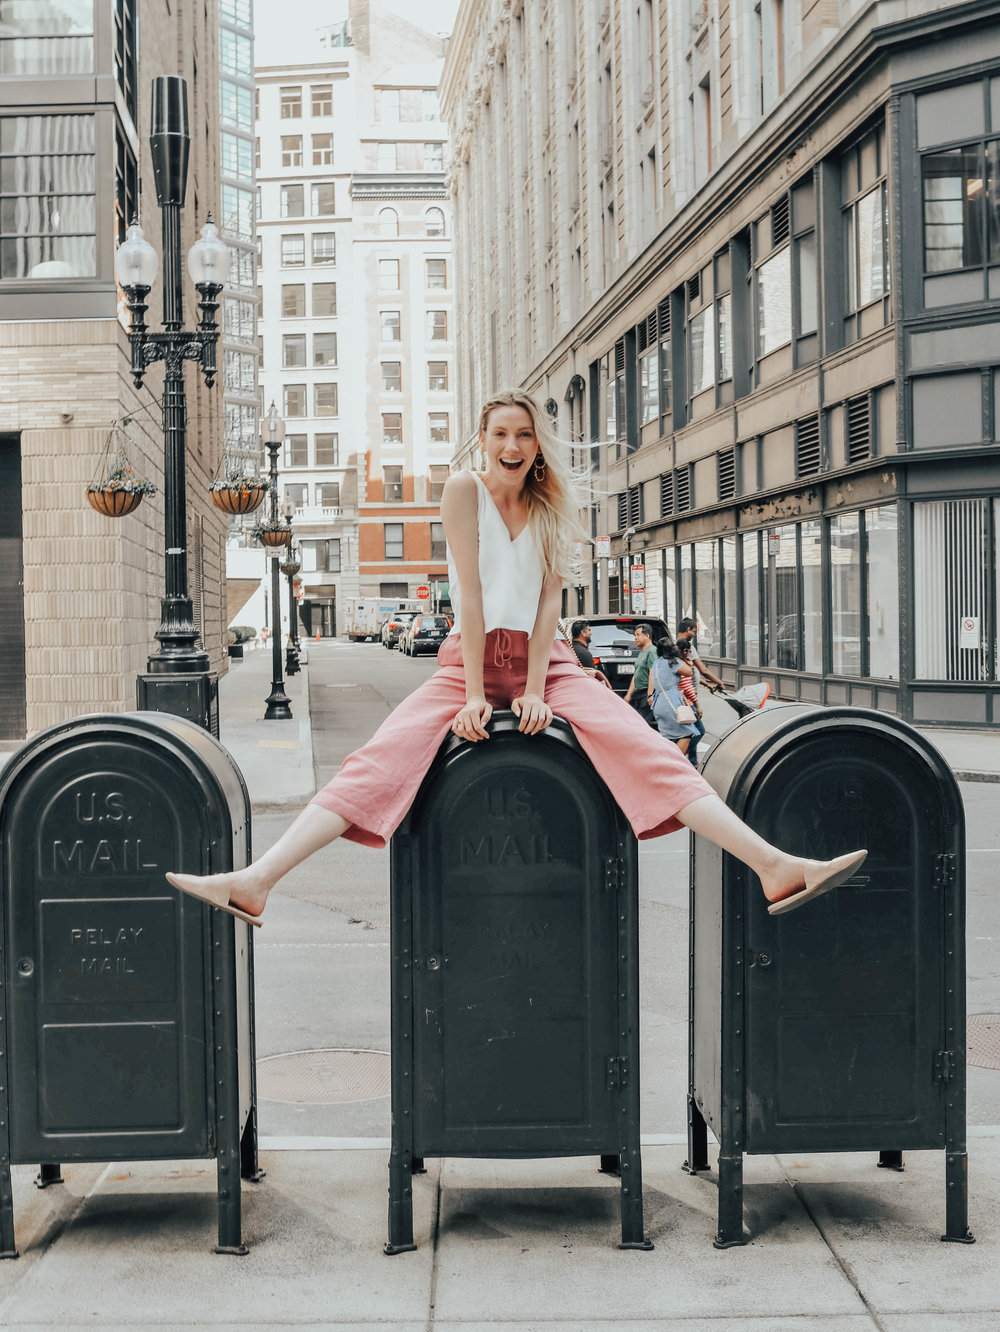 Boston Fashion Blogger | @maevestier